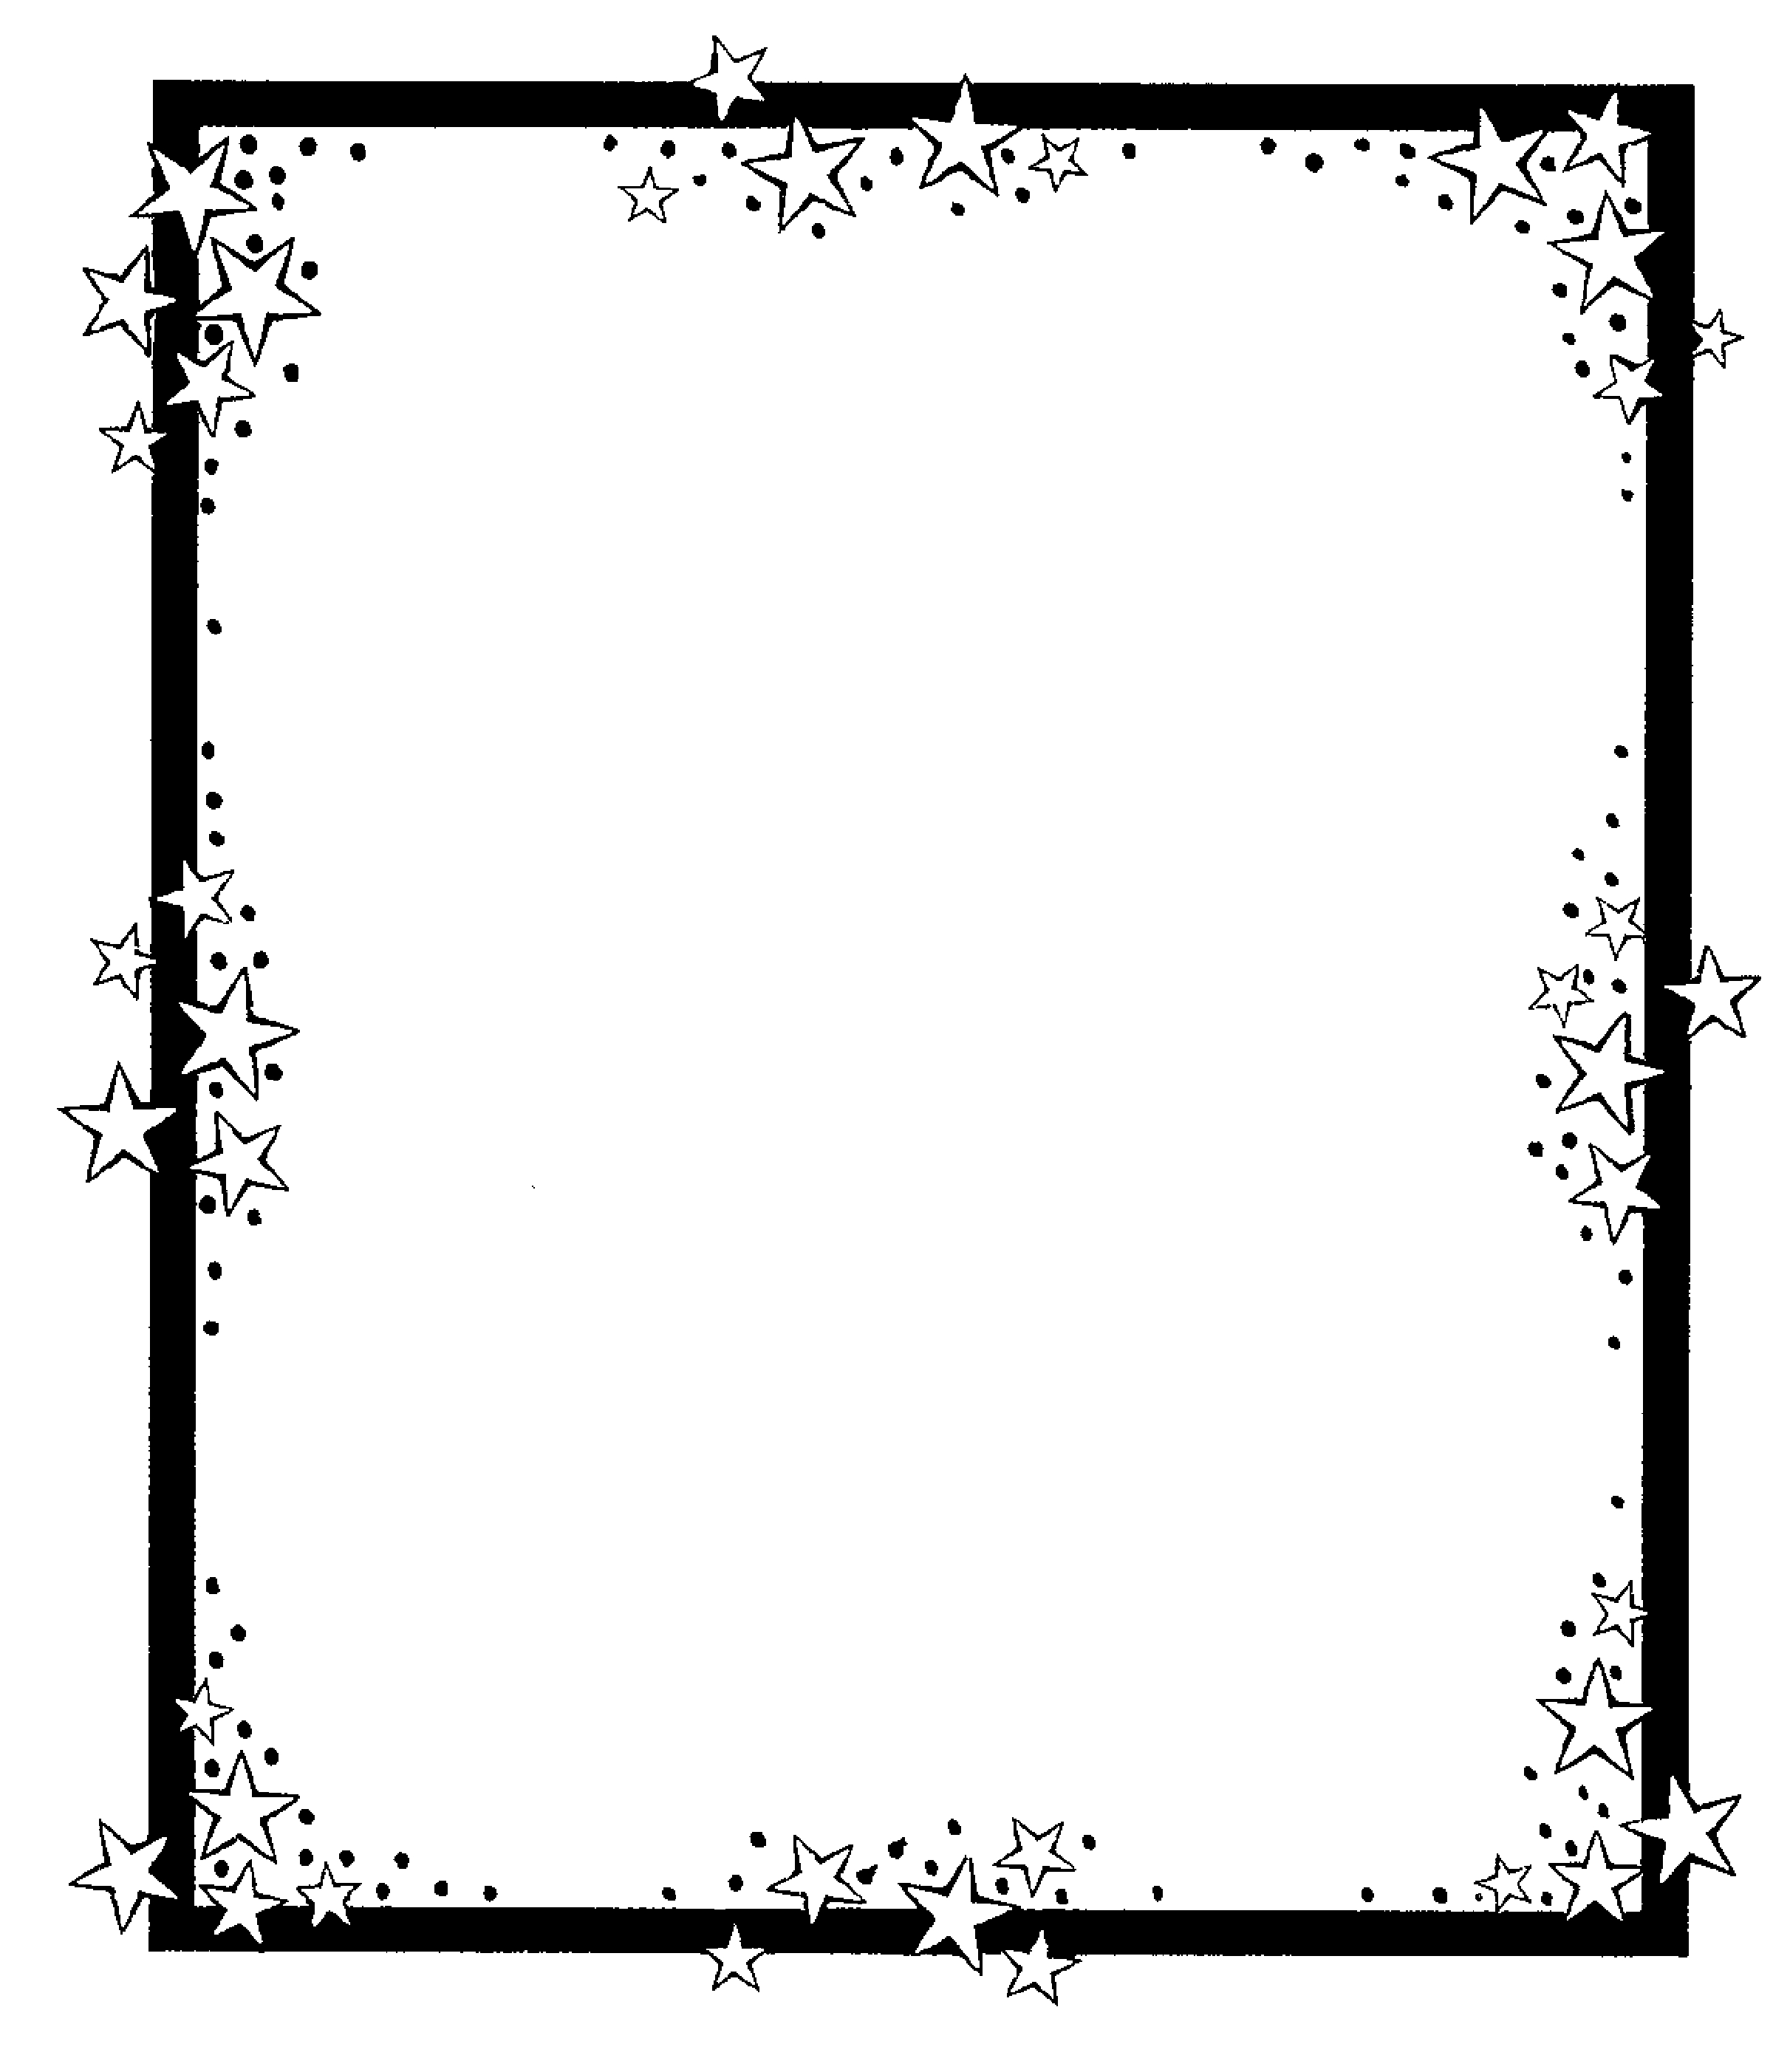 Patriotic star border clipart black and white picture free library Free Star Cliparts Borders, Download Free Clip Art, Free ... picture free library